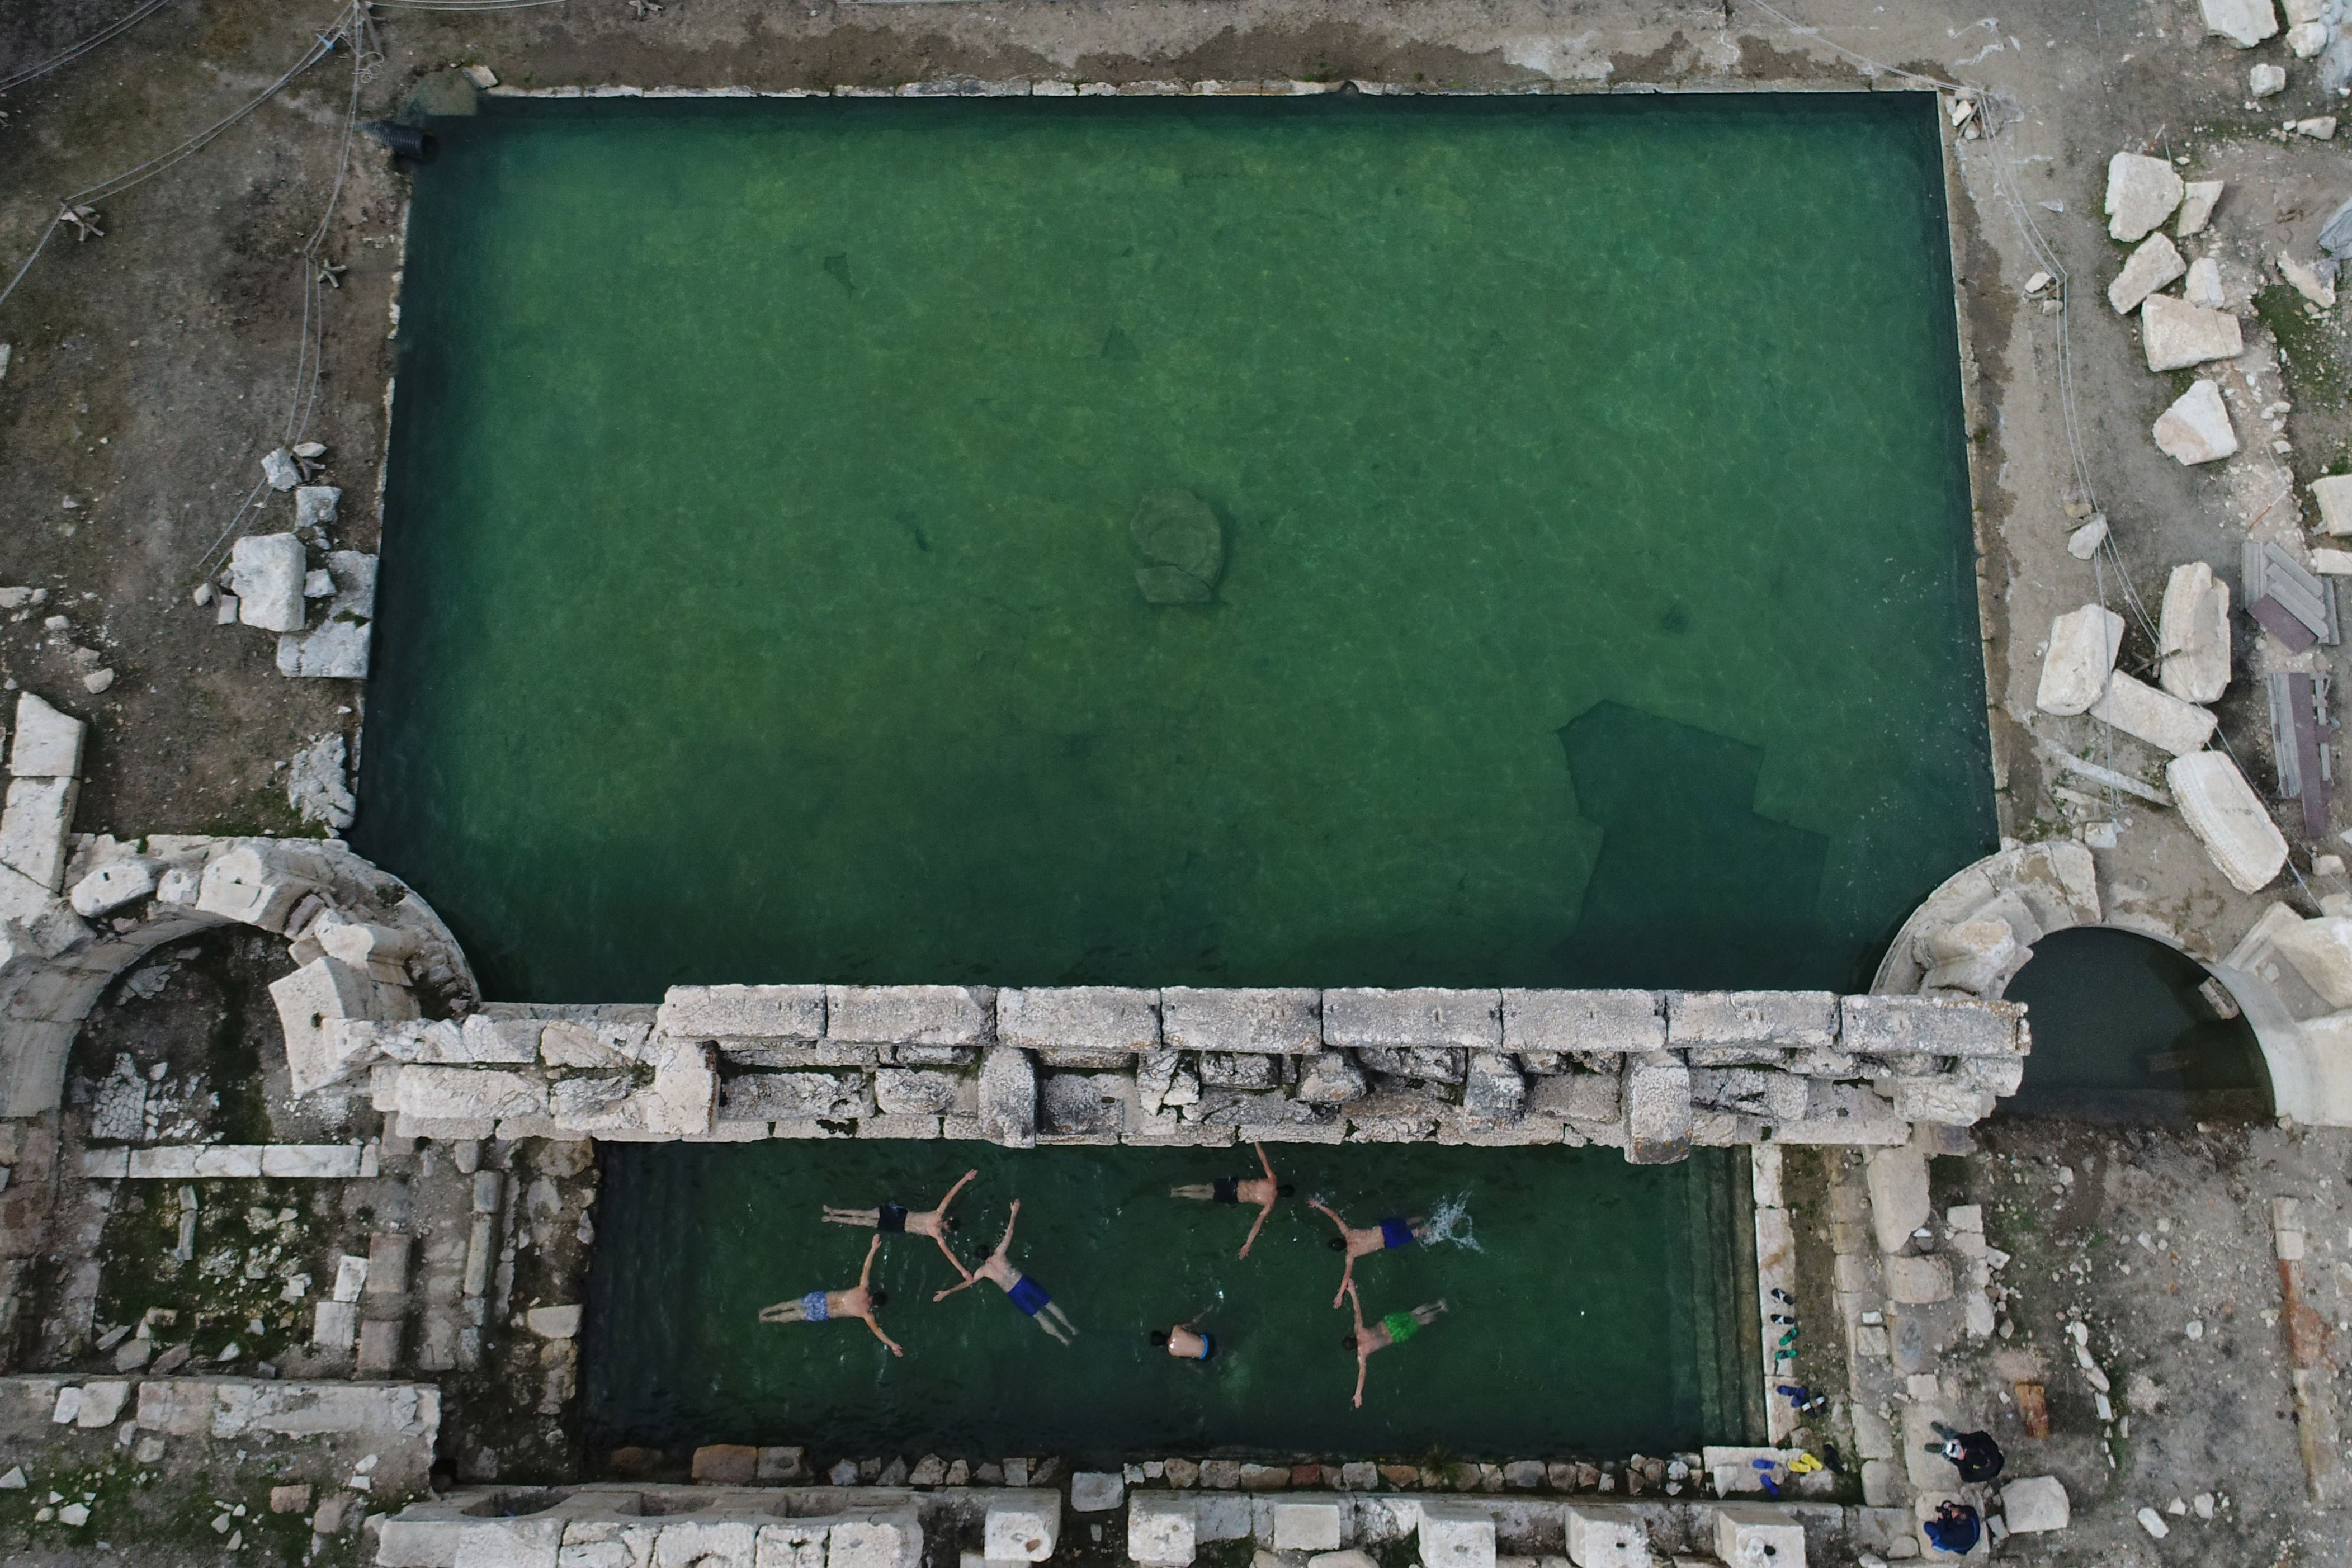 Slide 58 of 73: YOZGAT, TURKEY - FEBRUARY 08: A drone photo shows the aerial view of 2,000-year old ancient Roman Bath Basilica Therma at Sarikaya district of the central Yozgat province in Turkey on February 08, 2018. With it's 48-49 centigrade degrees water temperature the bath provides an opportunity for swimming during winter season. Basilica Therma, also known as the King's Daughter which is one of the historical figure of the Roman Empire, attracts many tourists' attention